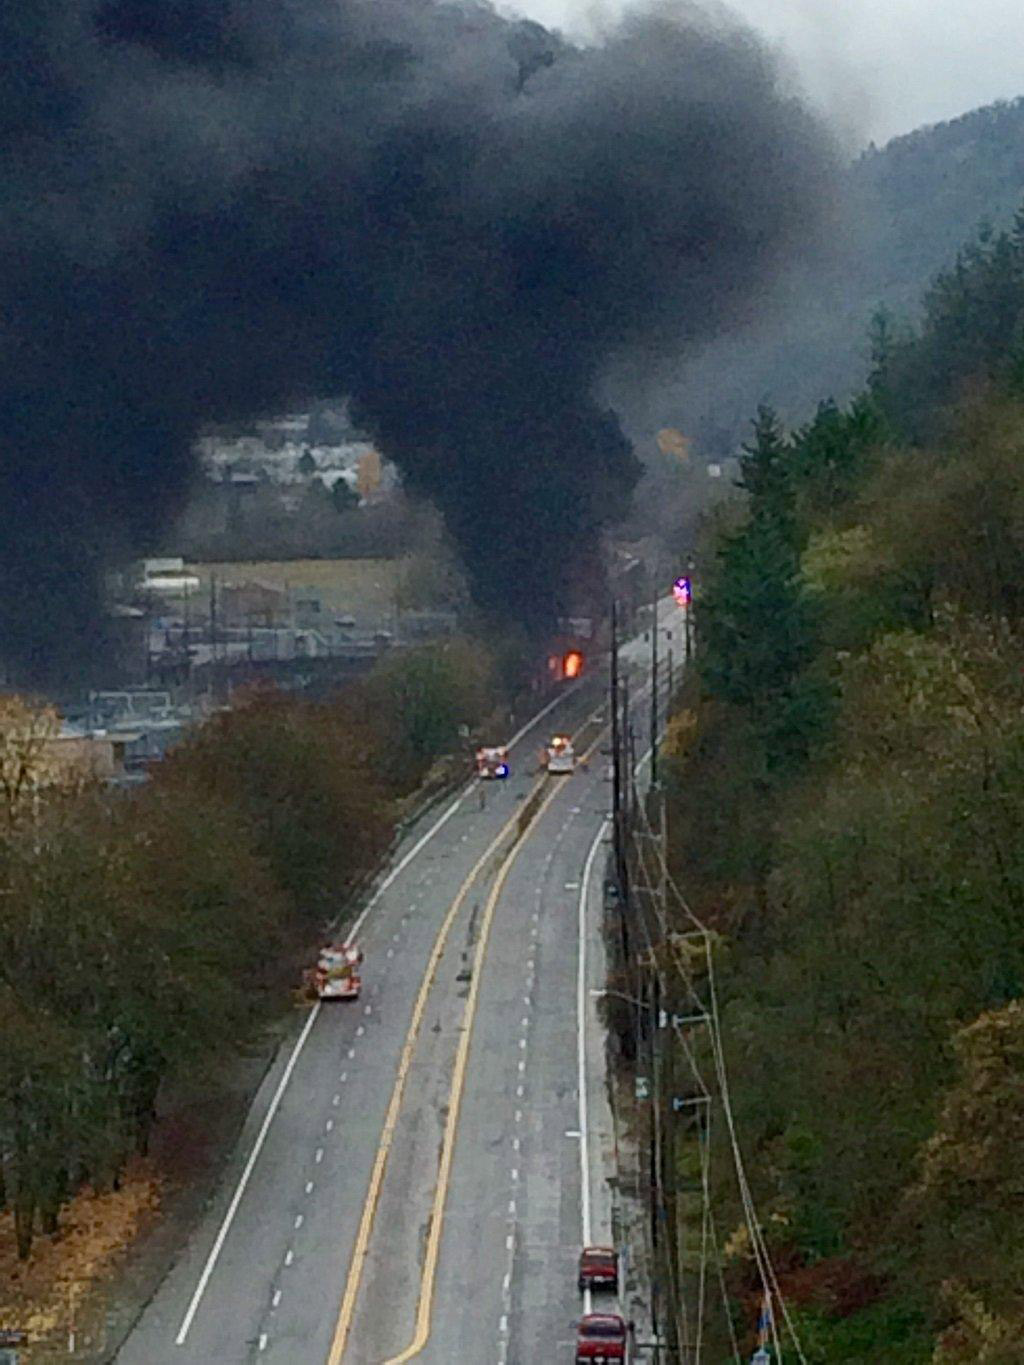 The scene of a of a traffic crash and fire involving a train along U.S. 30/St. Helens Road in Northwest Portland, Ore., on Dec. 13, 2015.